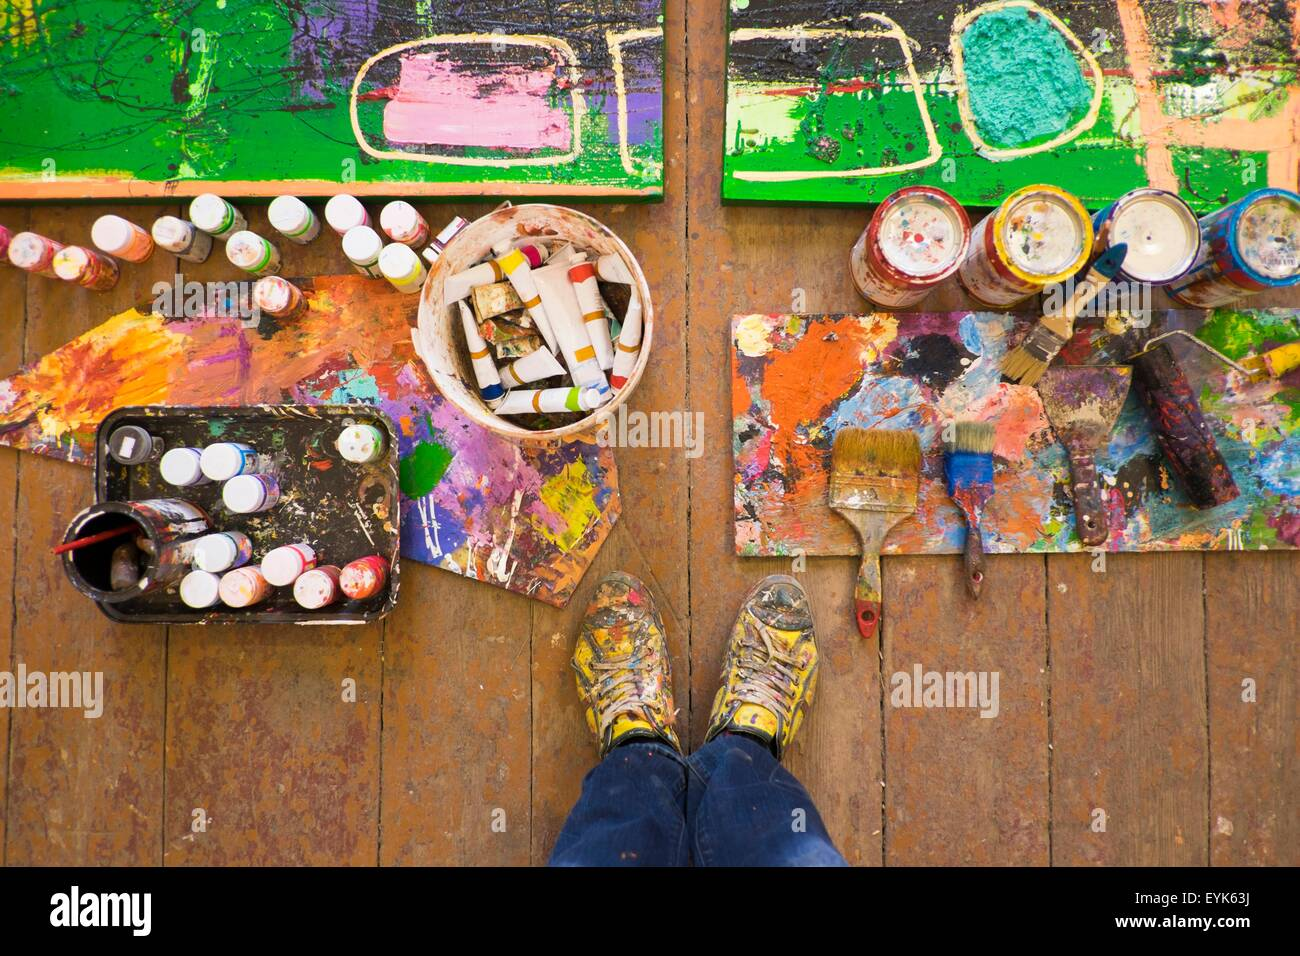 Artist selfie of feet paints and abstract painting in studio - Stock Image